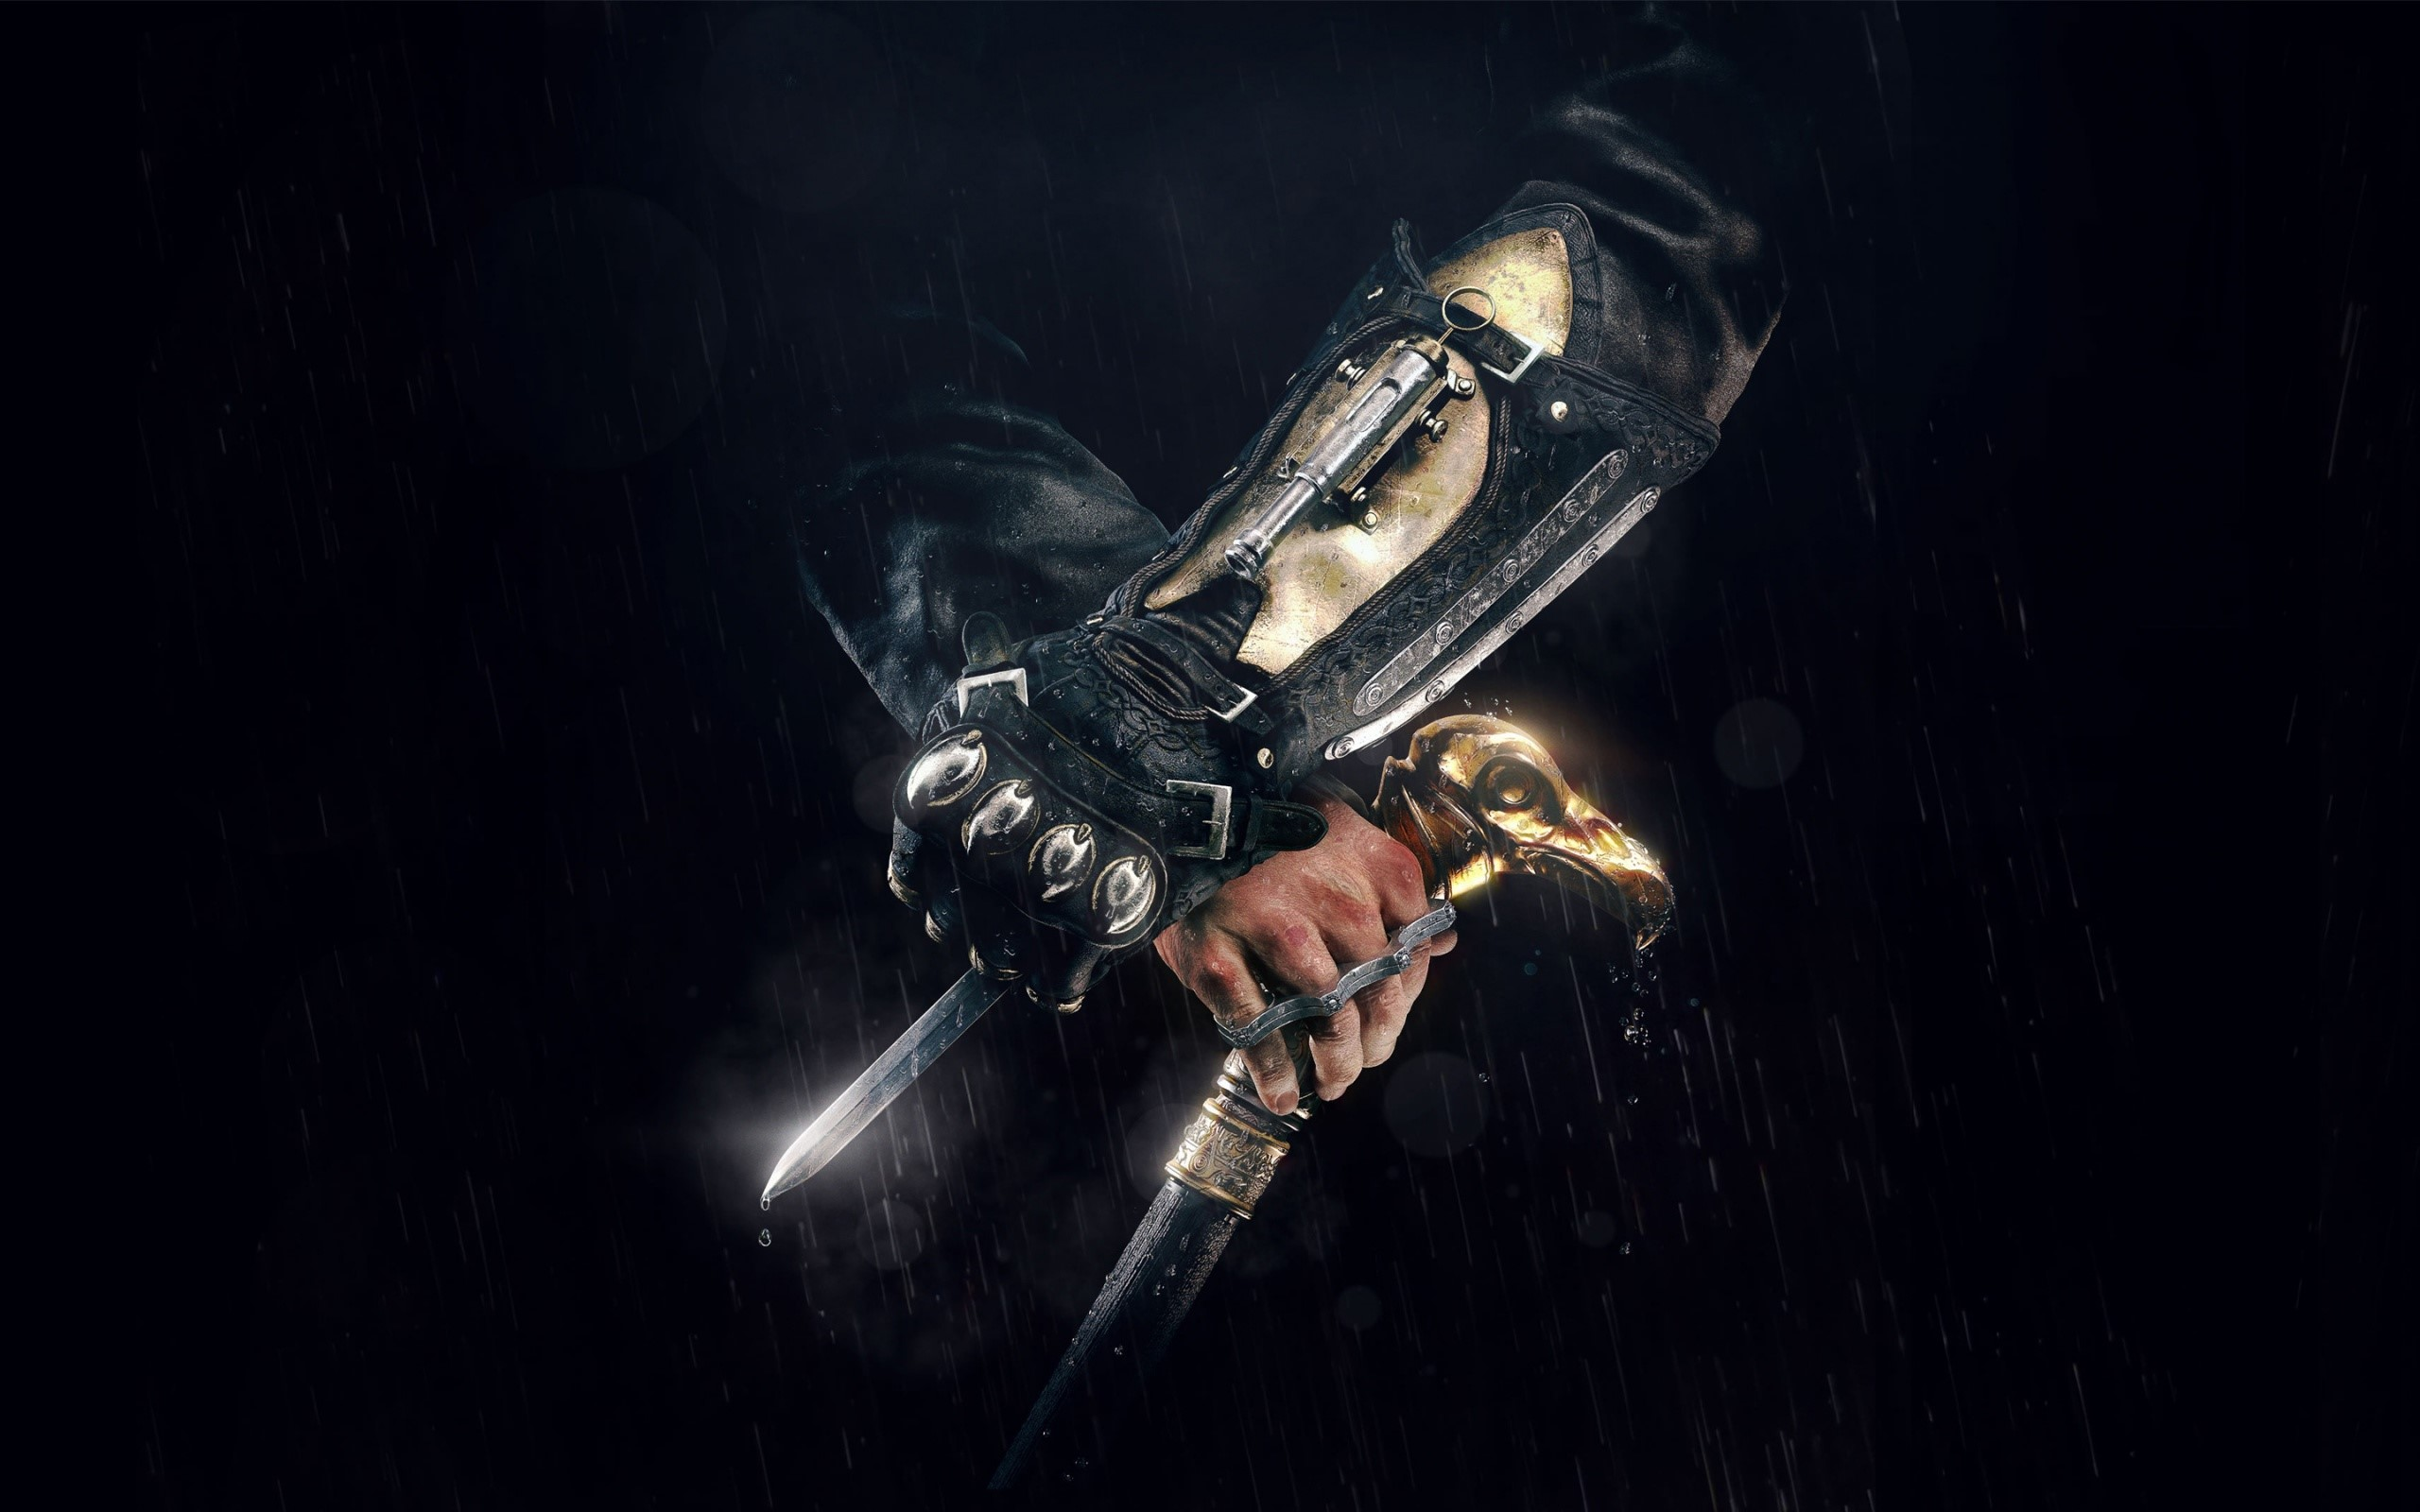 Wallpaper Game of the 2015 Assassins Creed Syndicate